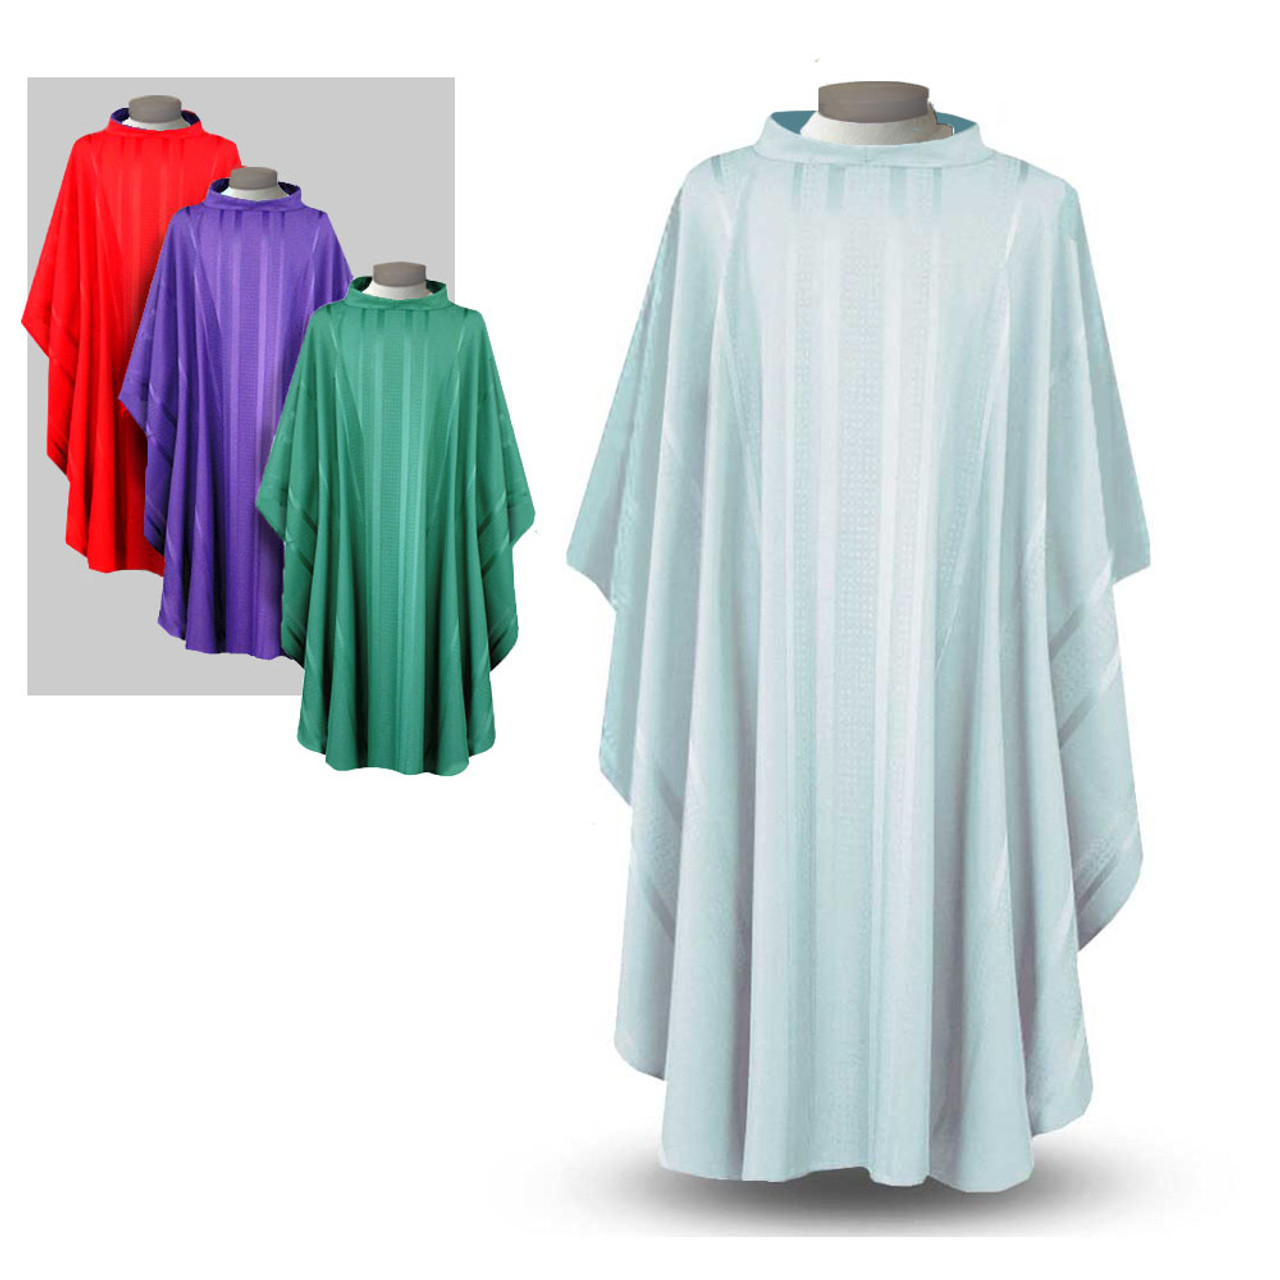 Inexpensive White Chasuble